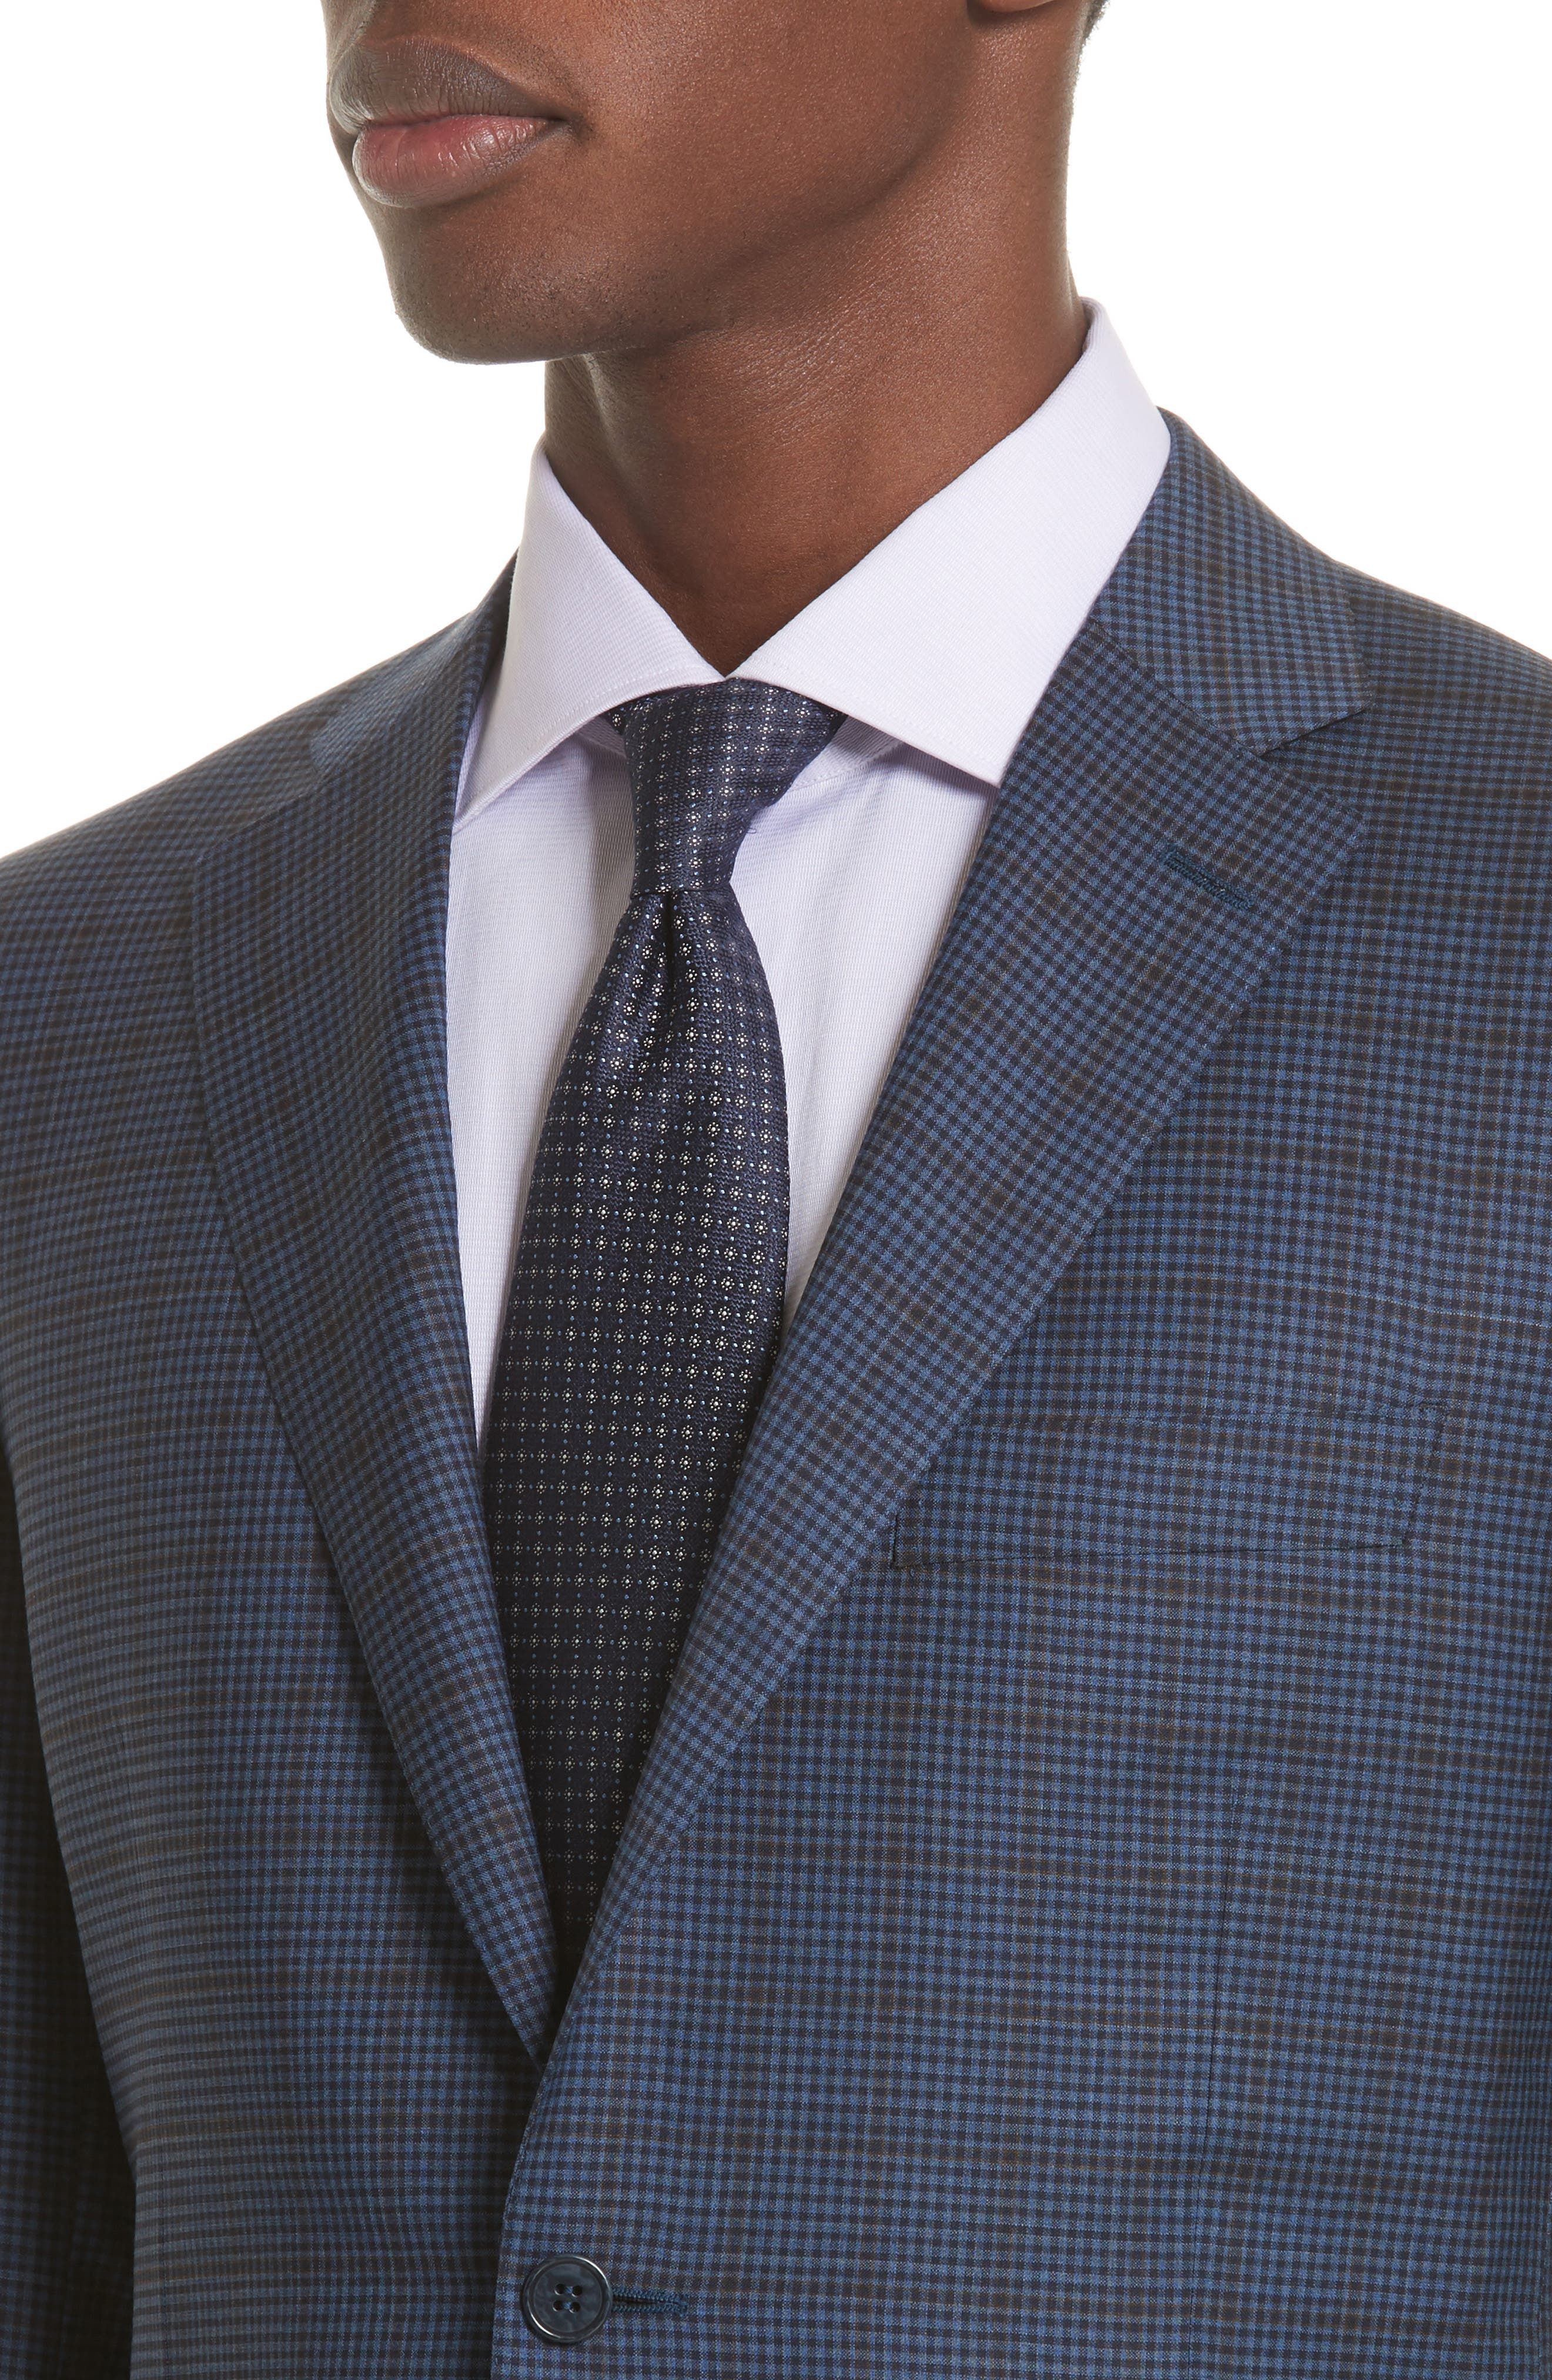 Classic Fit Check Wool Sport Coat,                             Alternate thumbnail 4, color,                             410